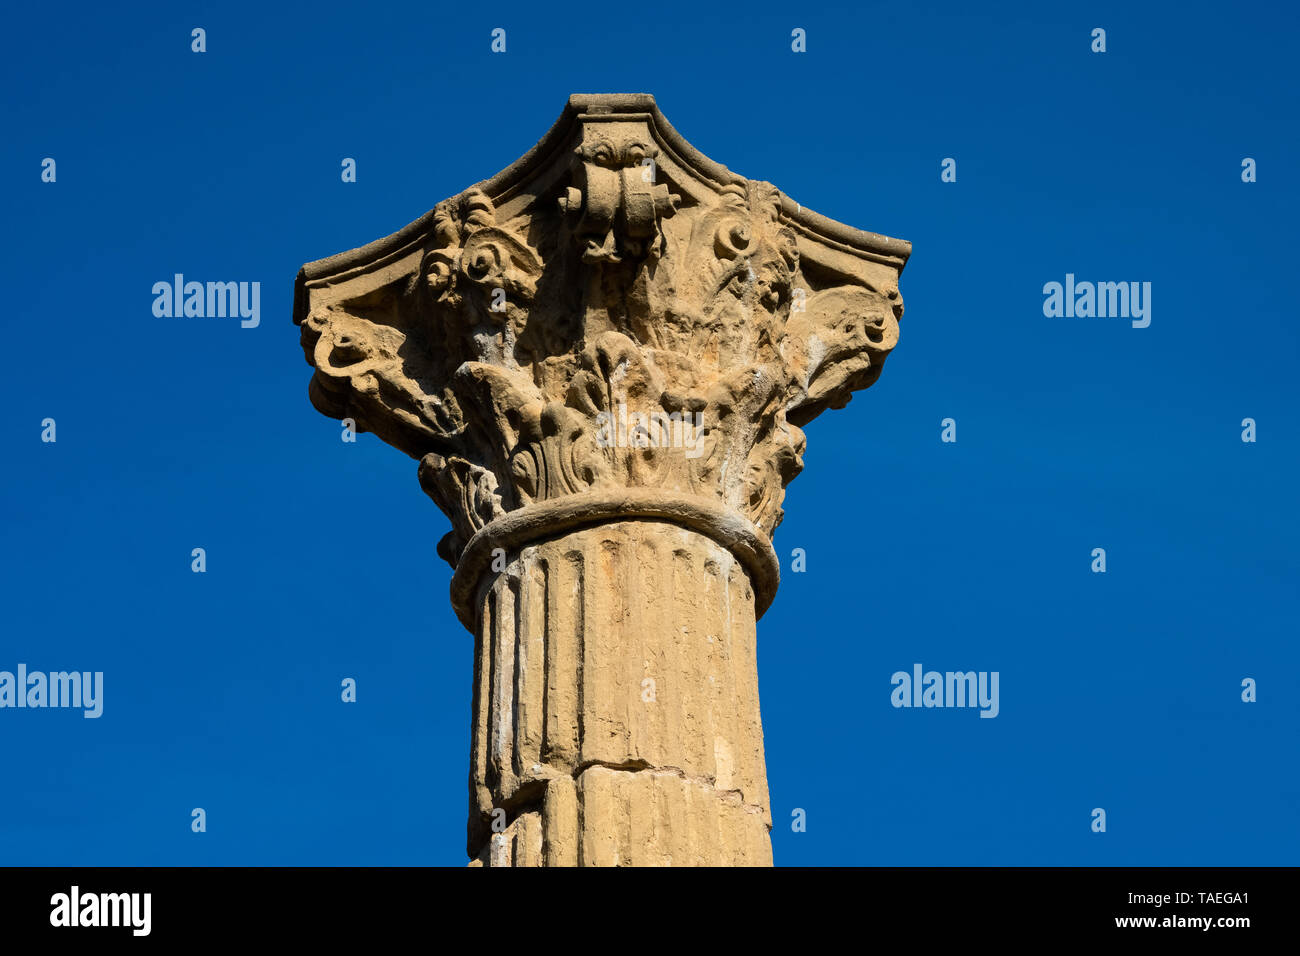 Tarragona, Spain. February 8, 2019. Colonial forum of Tarraco (Foro Colonial de Tarraco) an ancient Roman archaeological site located in the modern ci - Stock Image